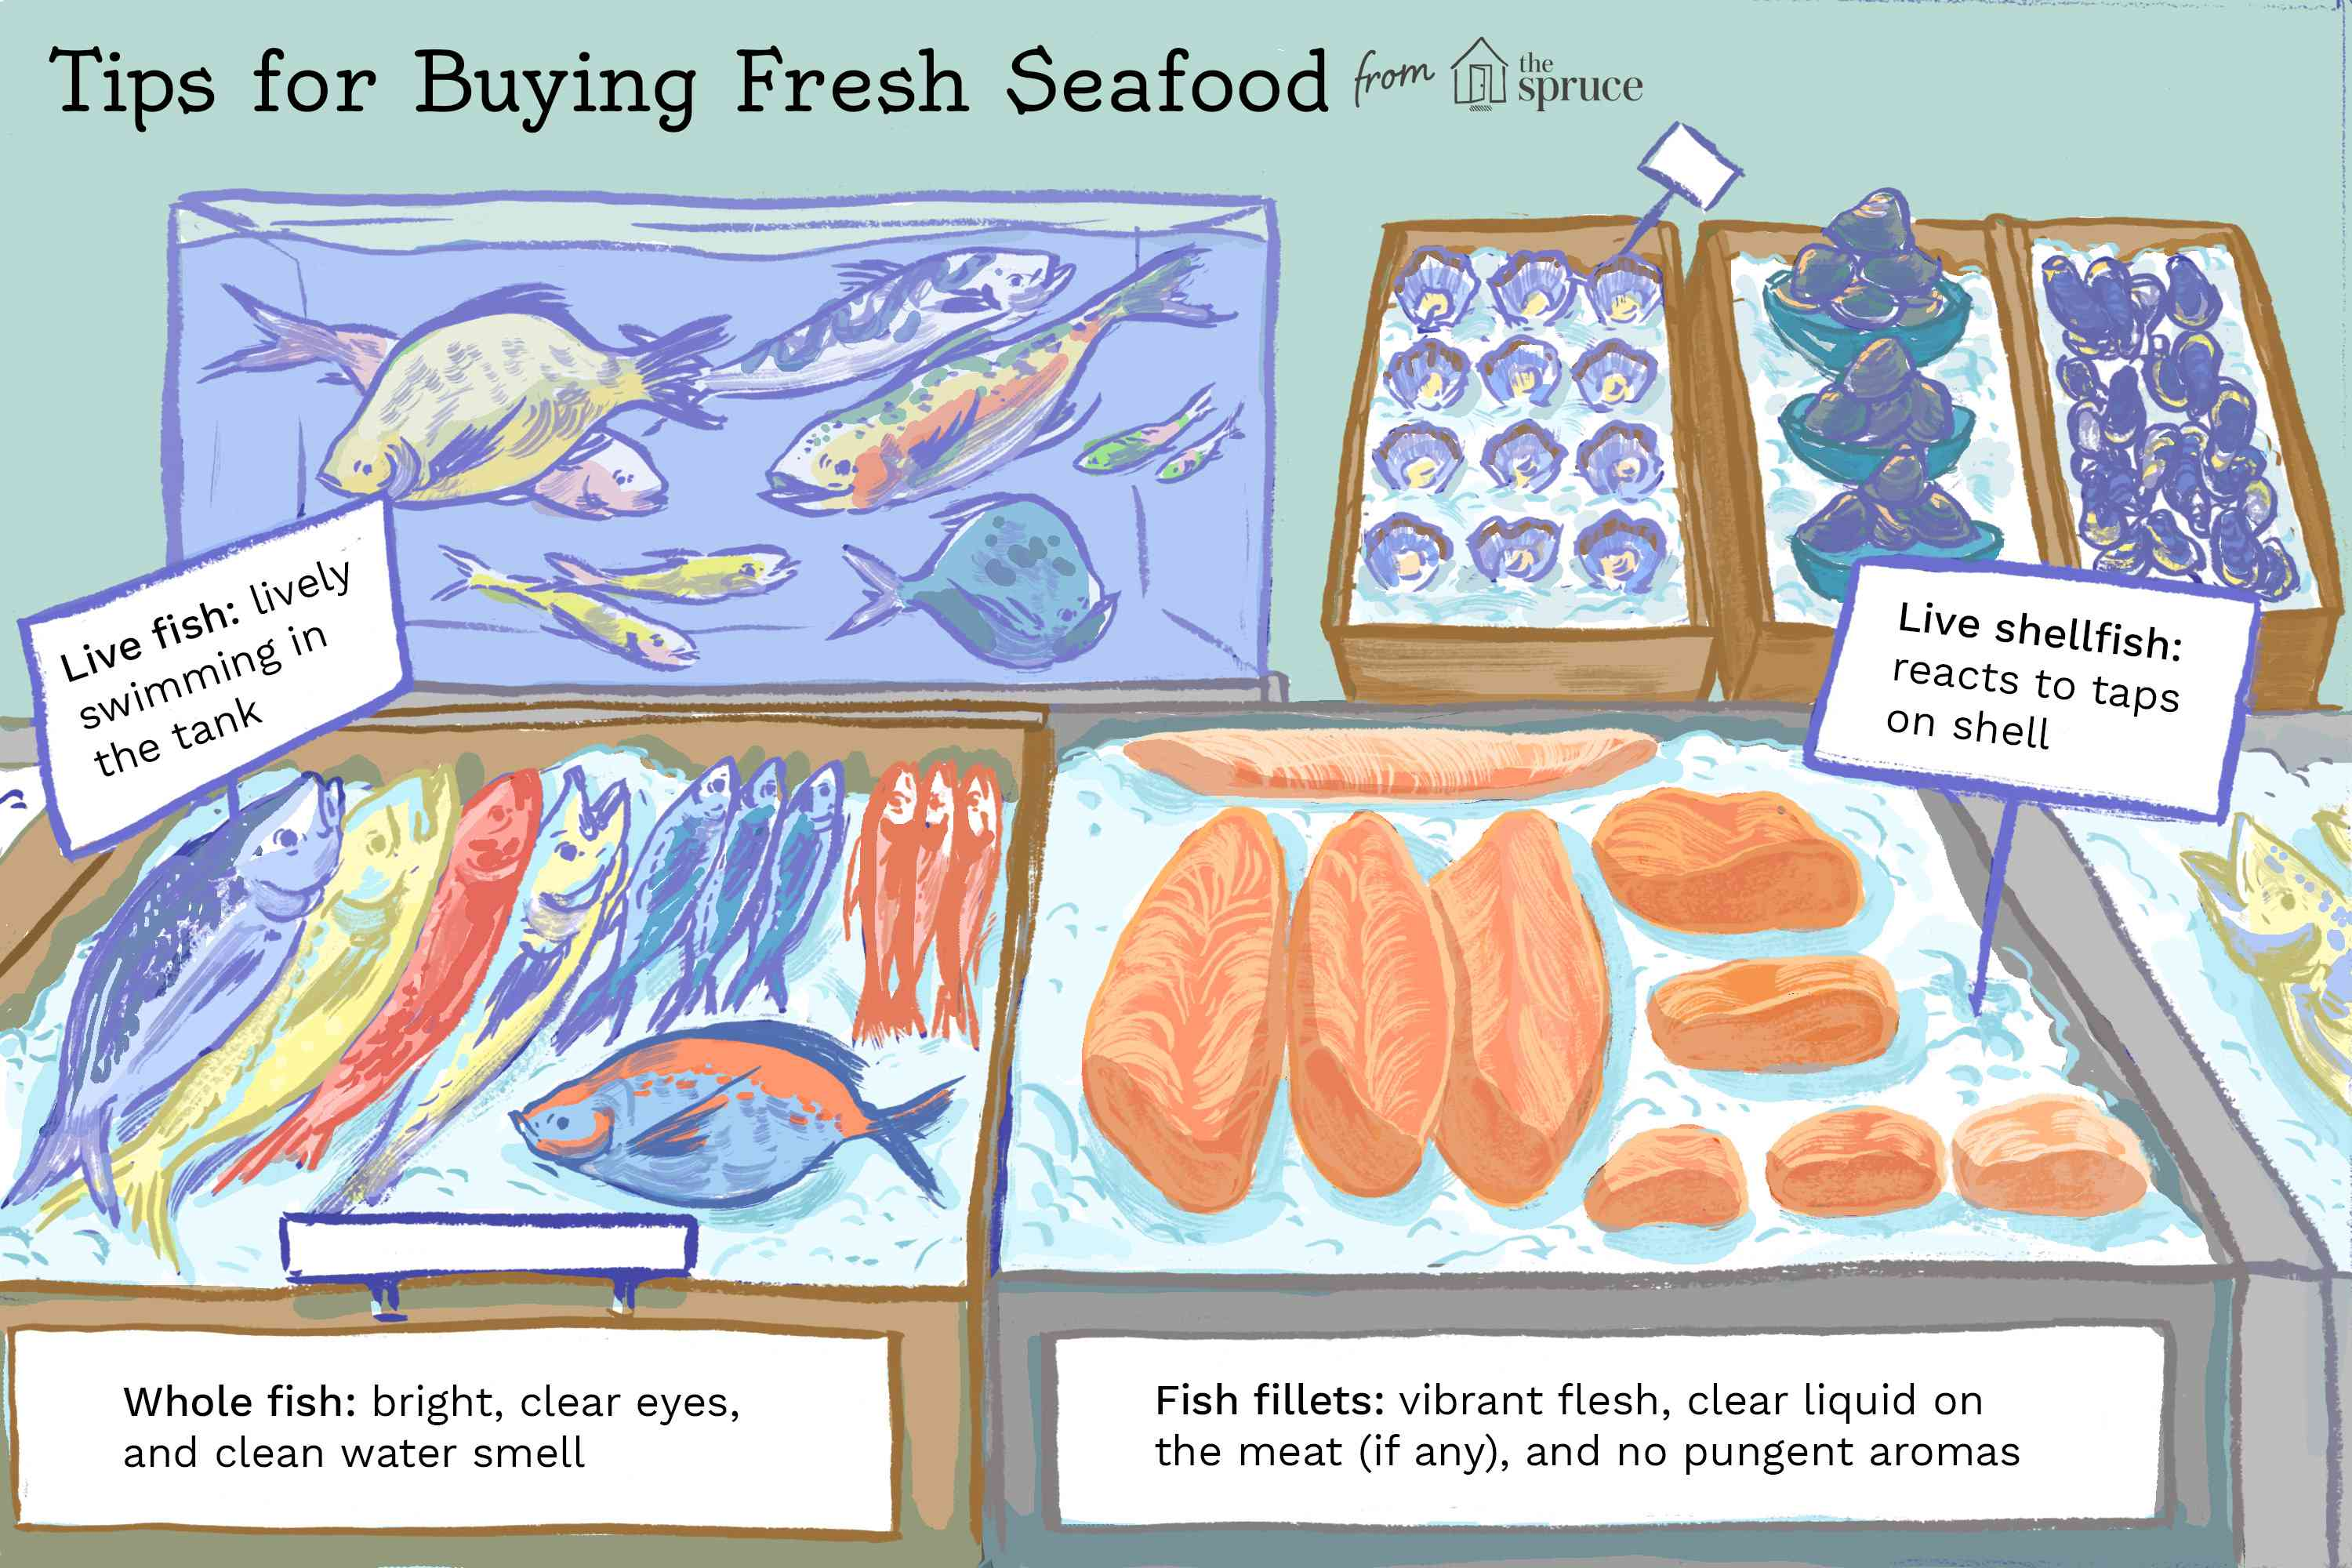 tips for buying fresh seafood